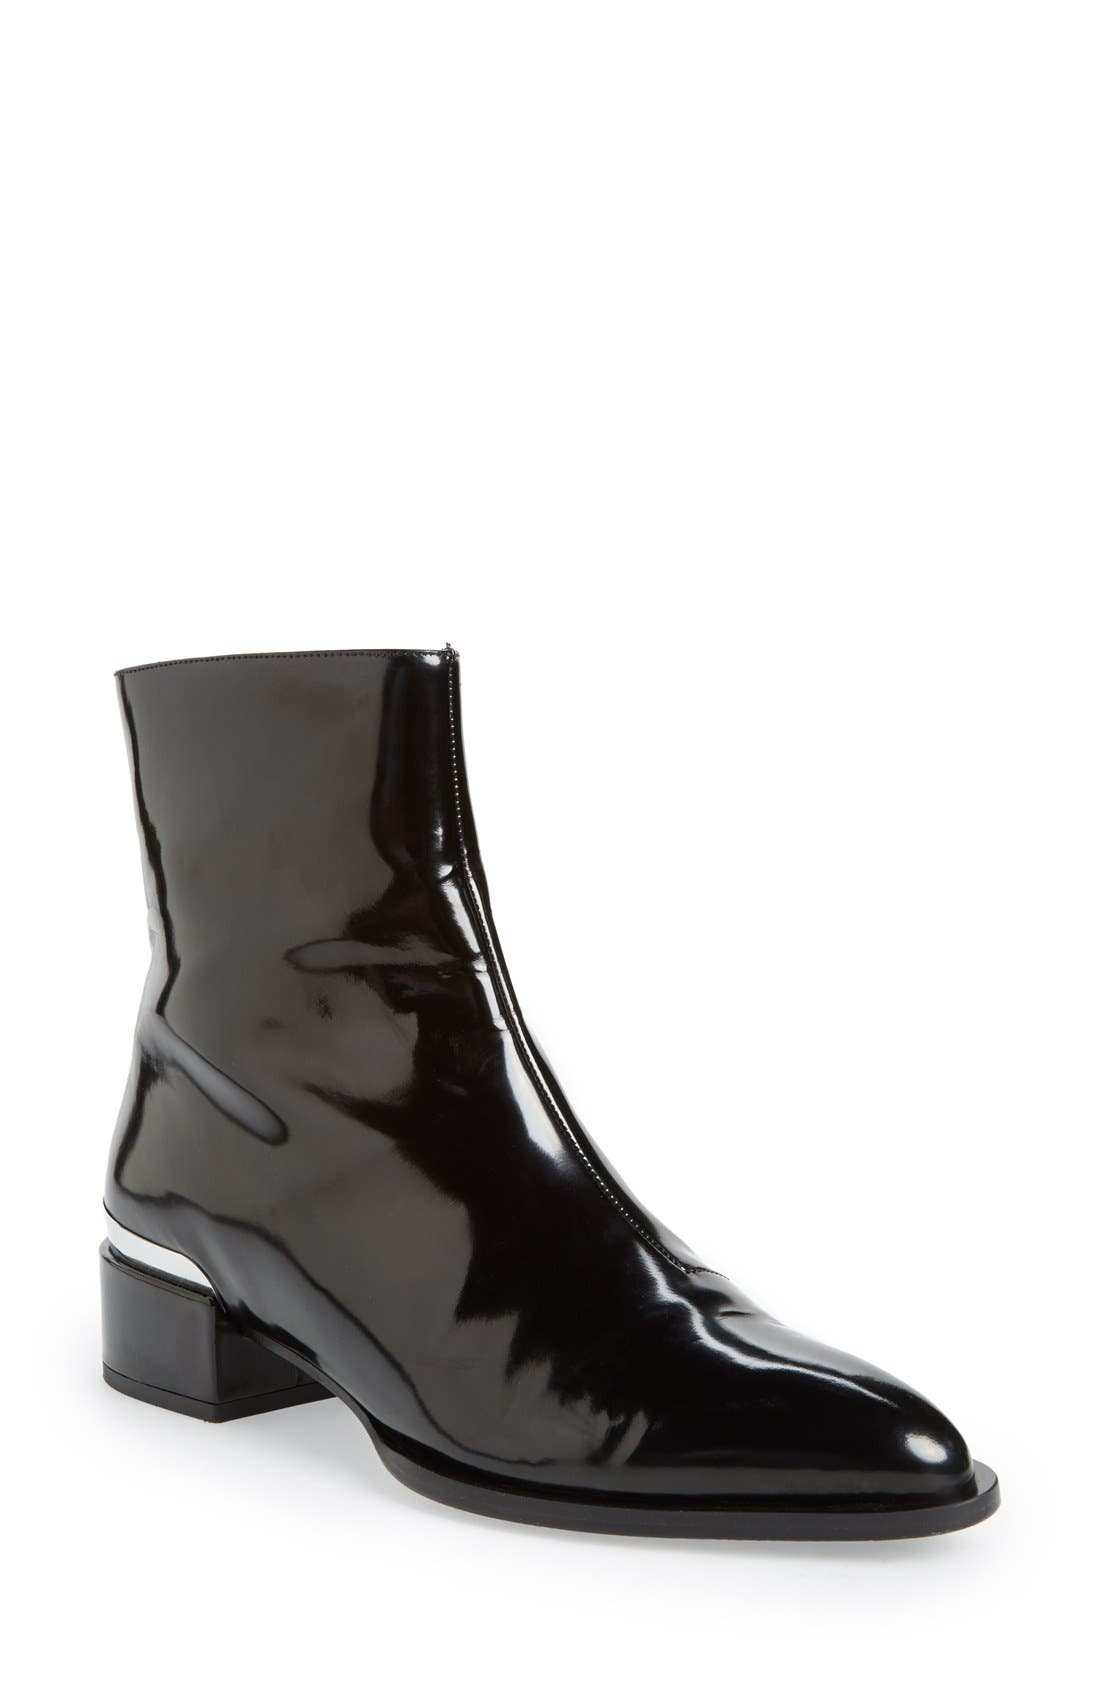 Alternate Image 1 Selected - Vince 'Yasmin' Pointy Toe Boot (Women)